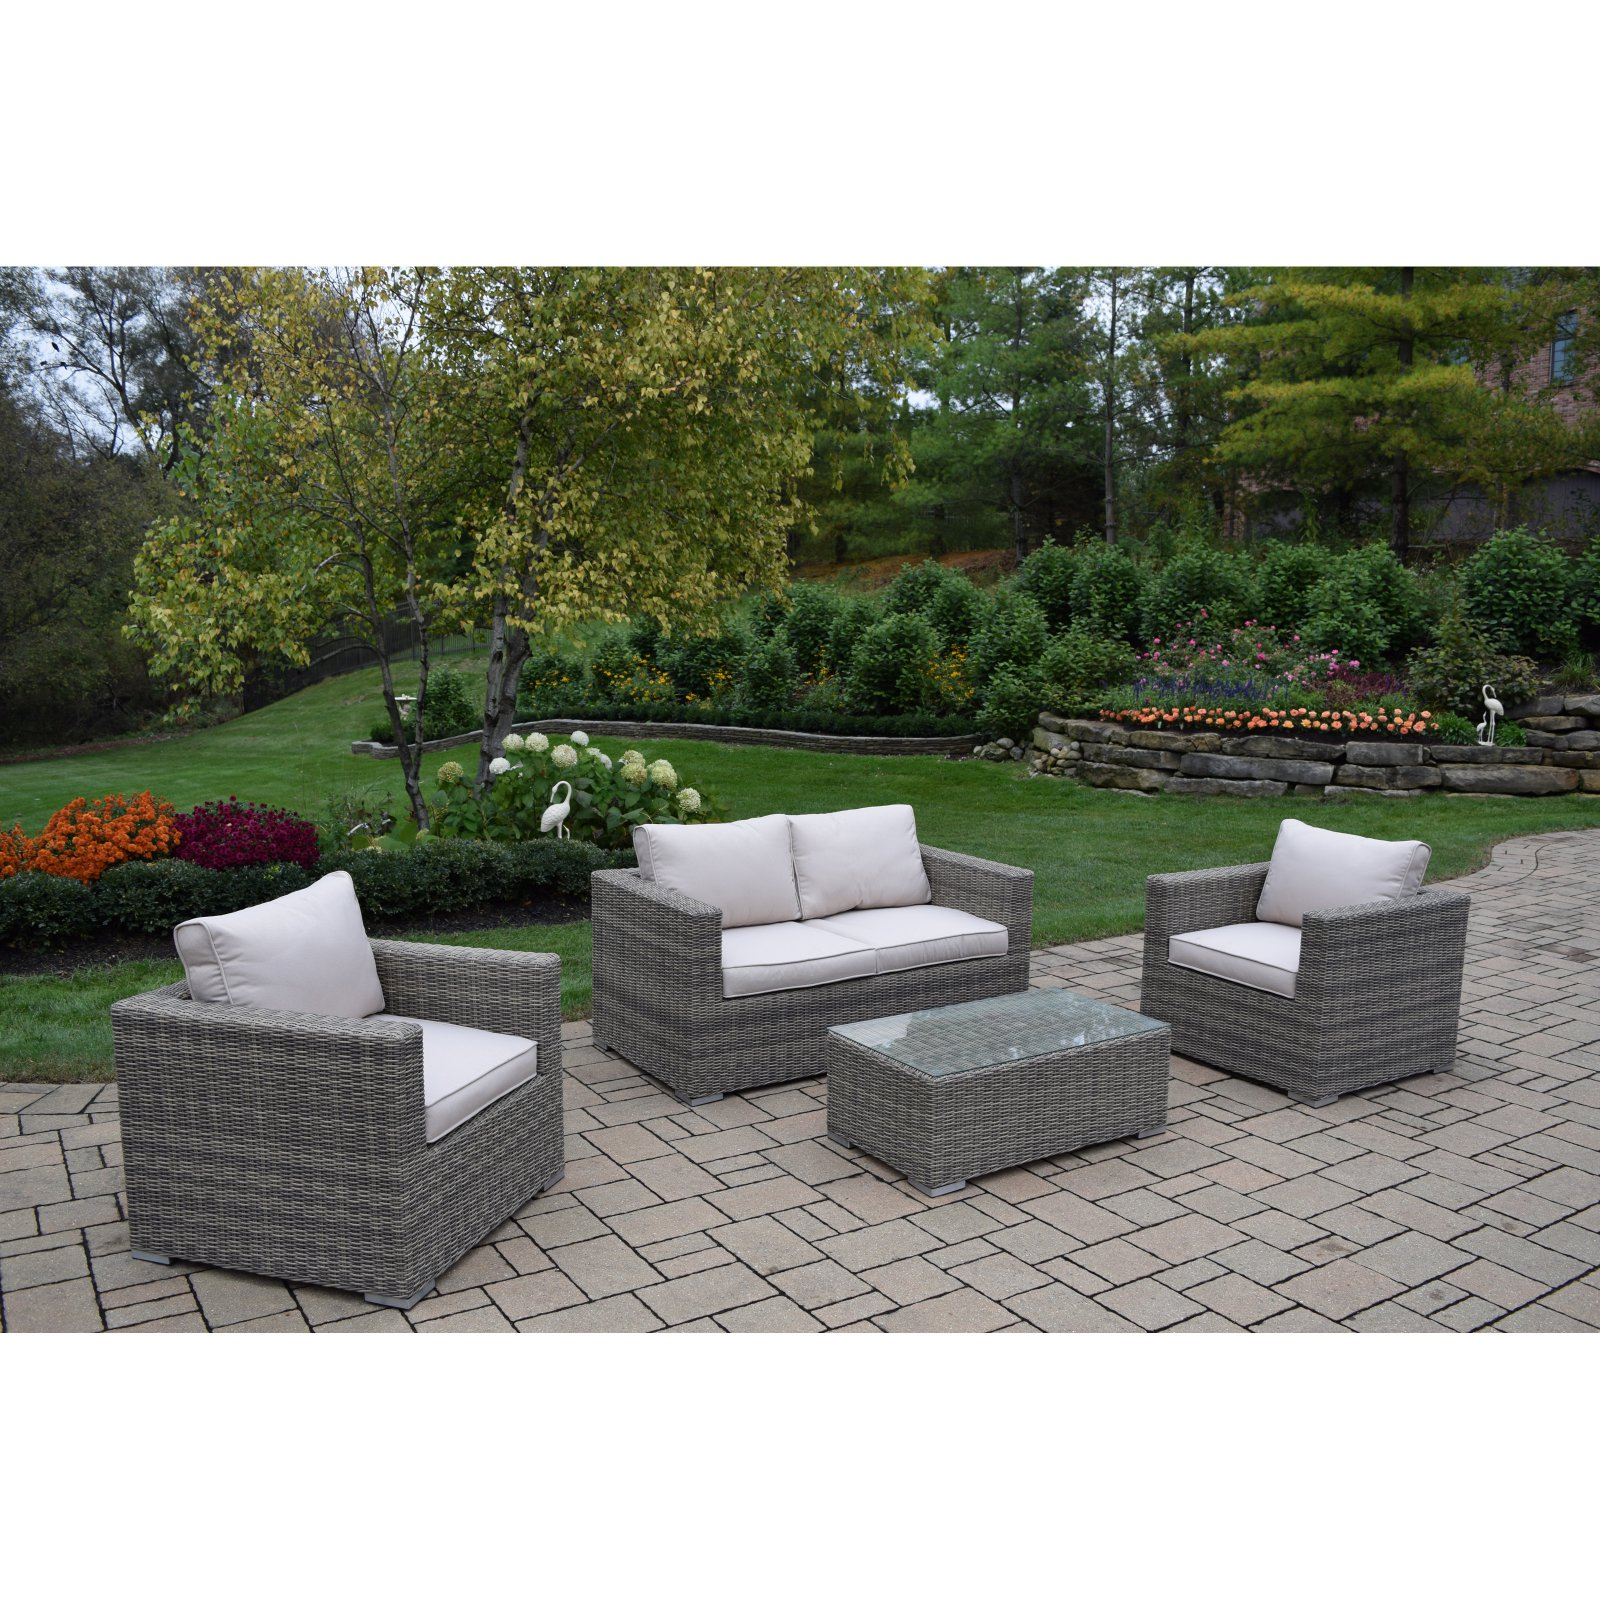 Oakland Living Borneo Resin Wicker 4 Piece Patio Conversation Set by Oakland Living Corp